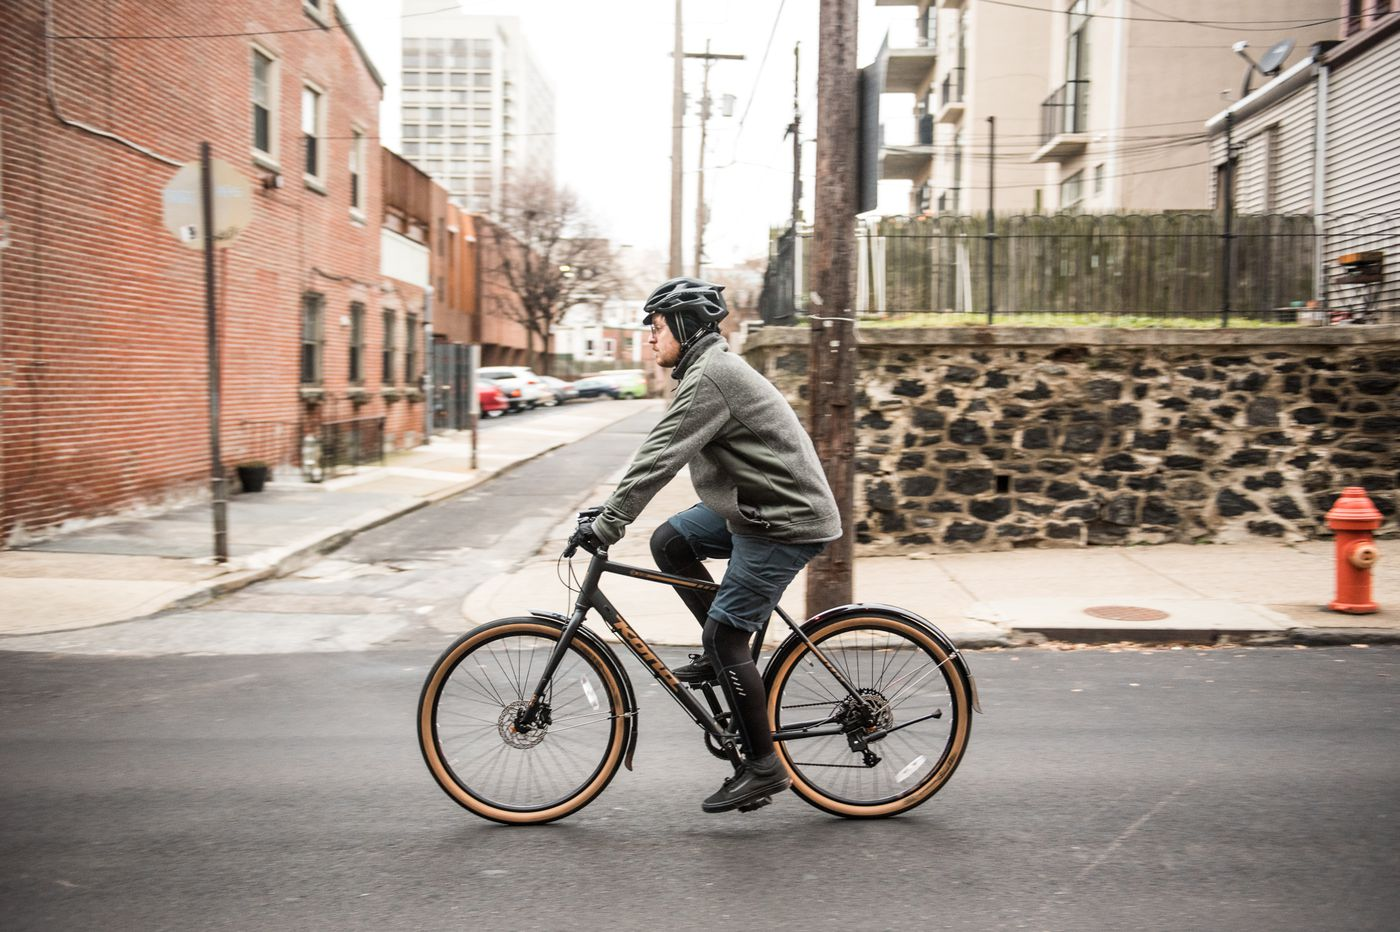 Winter bike gear: How to stay cruising in the elements